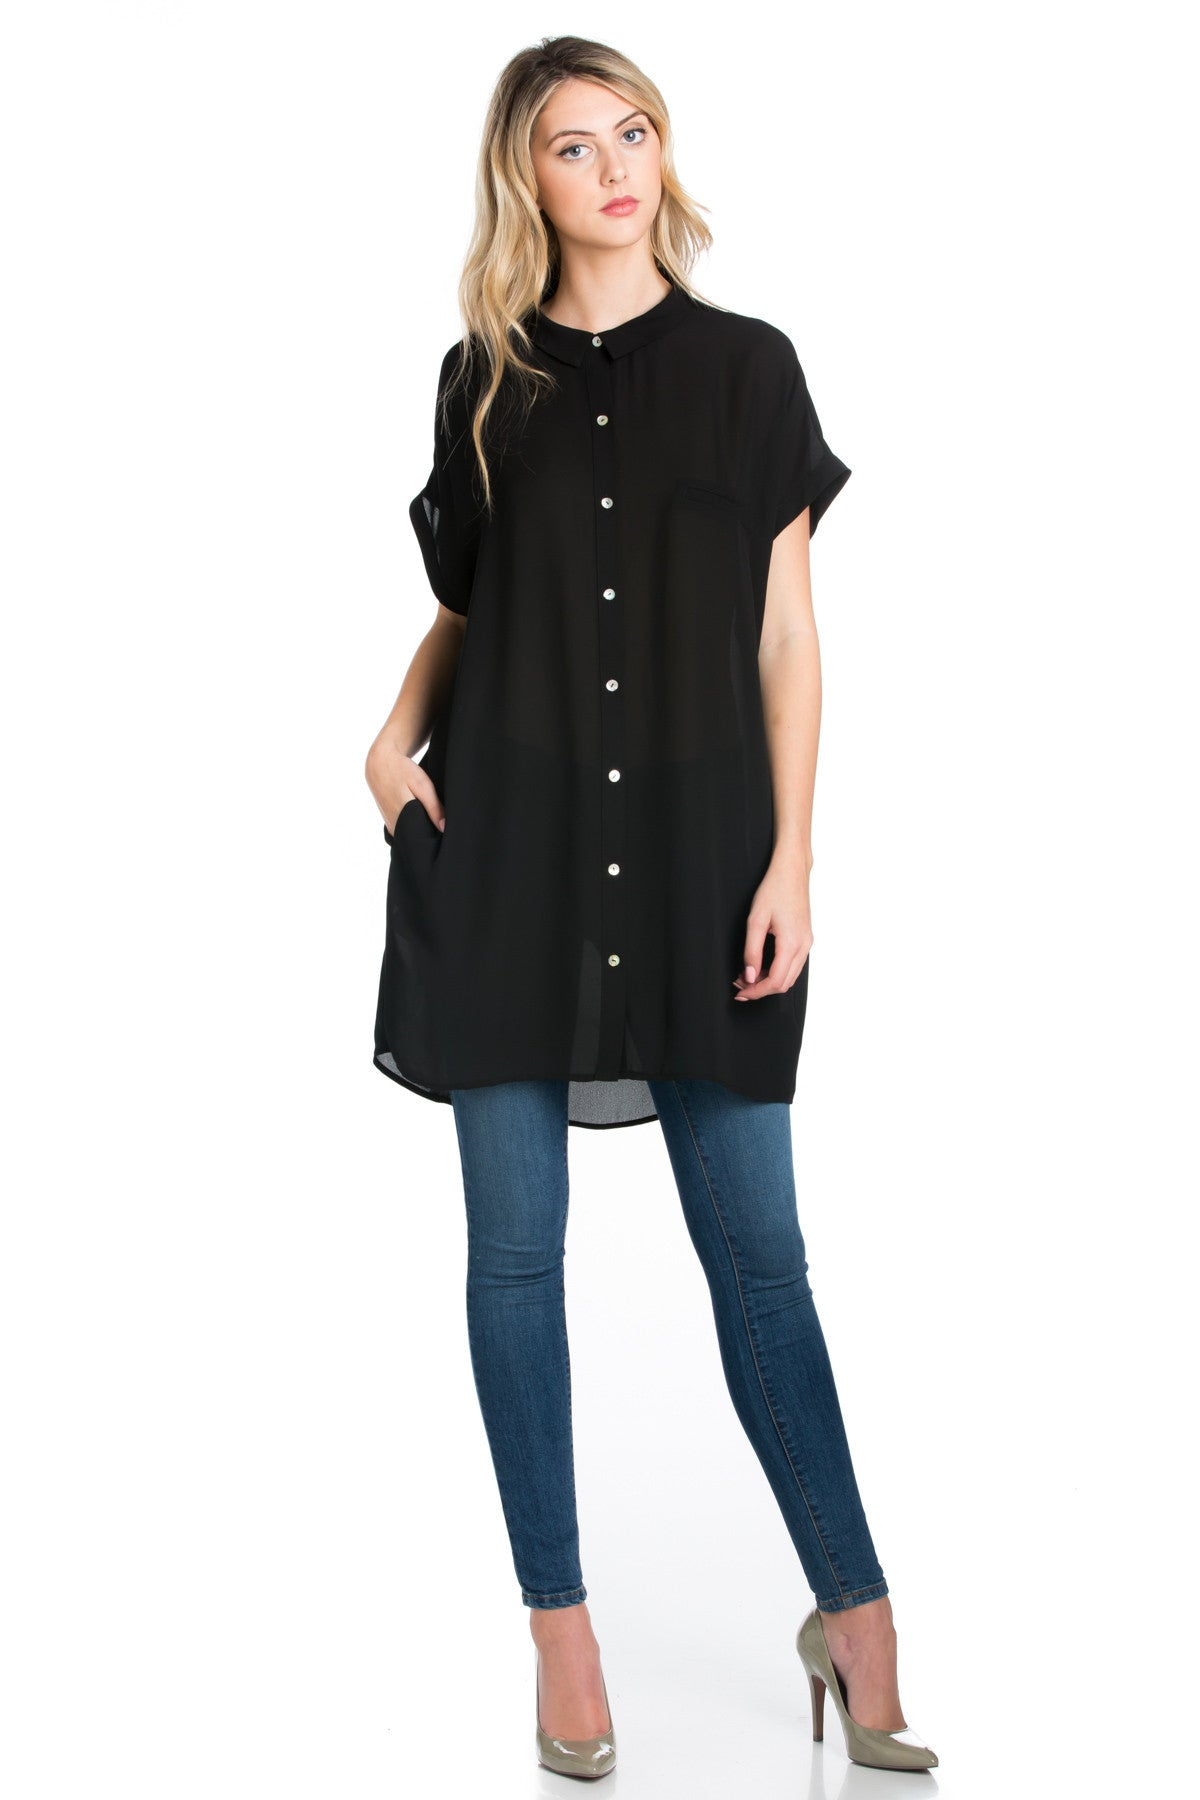 Short Sleeve Longline Button Down Chiffon Top in Midnight Blue - Tops - My Yuccie - 8